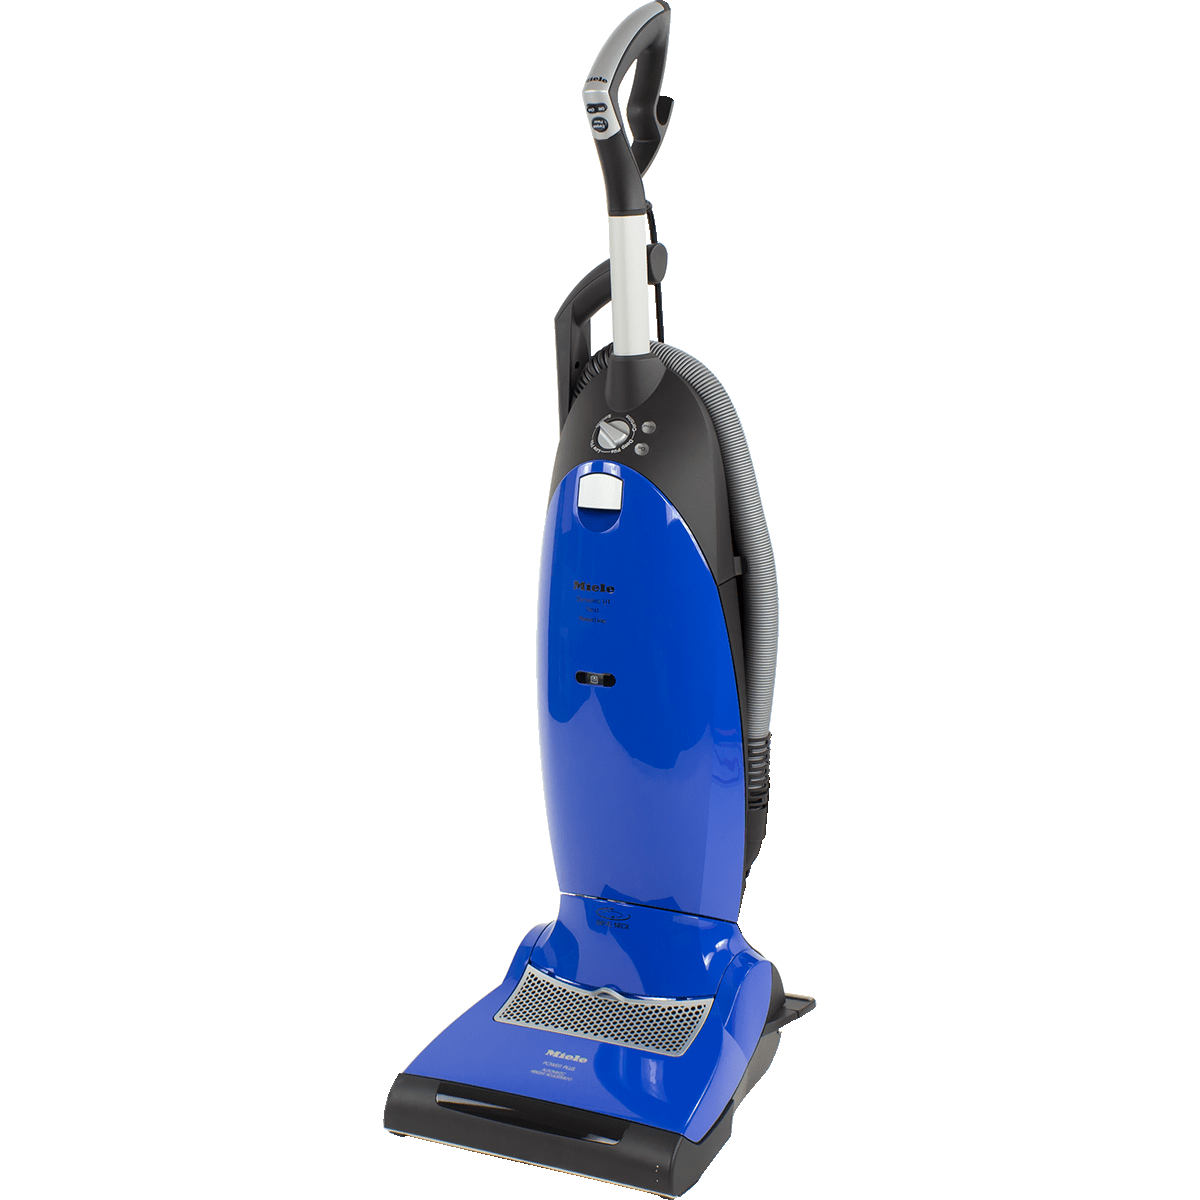 miele upright vacuum cleaner reviews